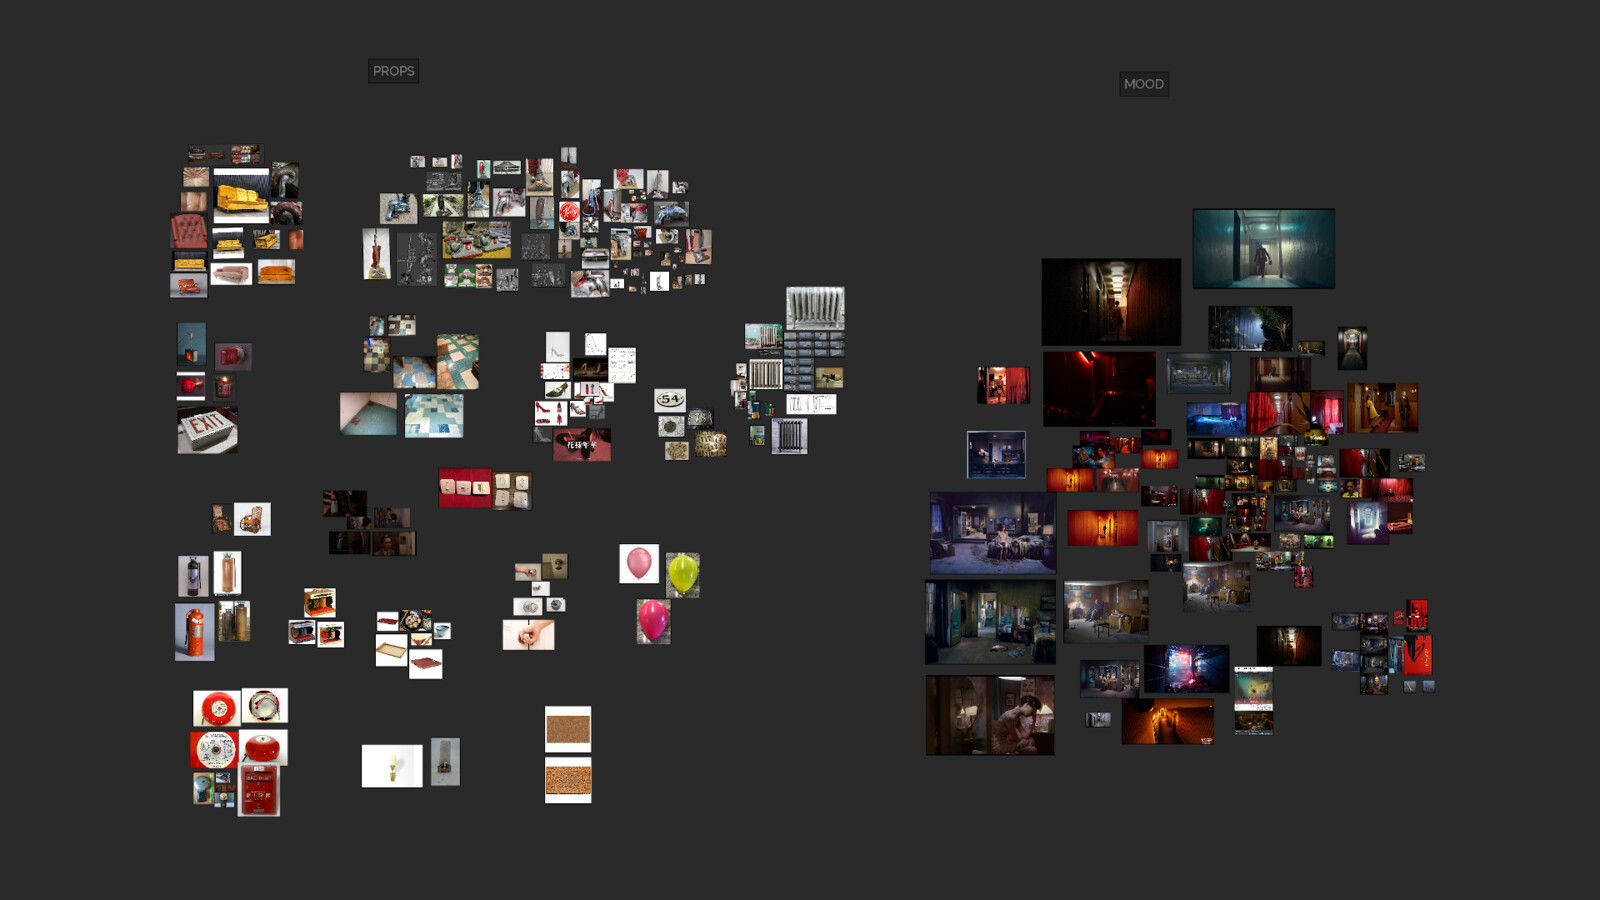 Reference Images collected both for props and mood